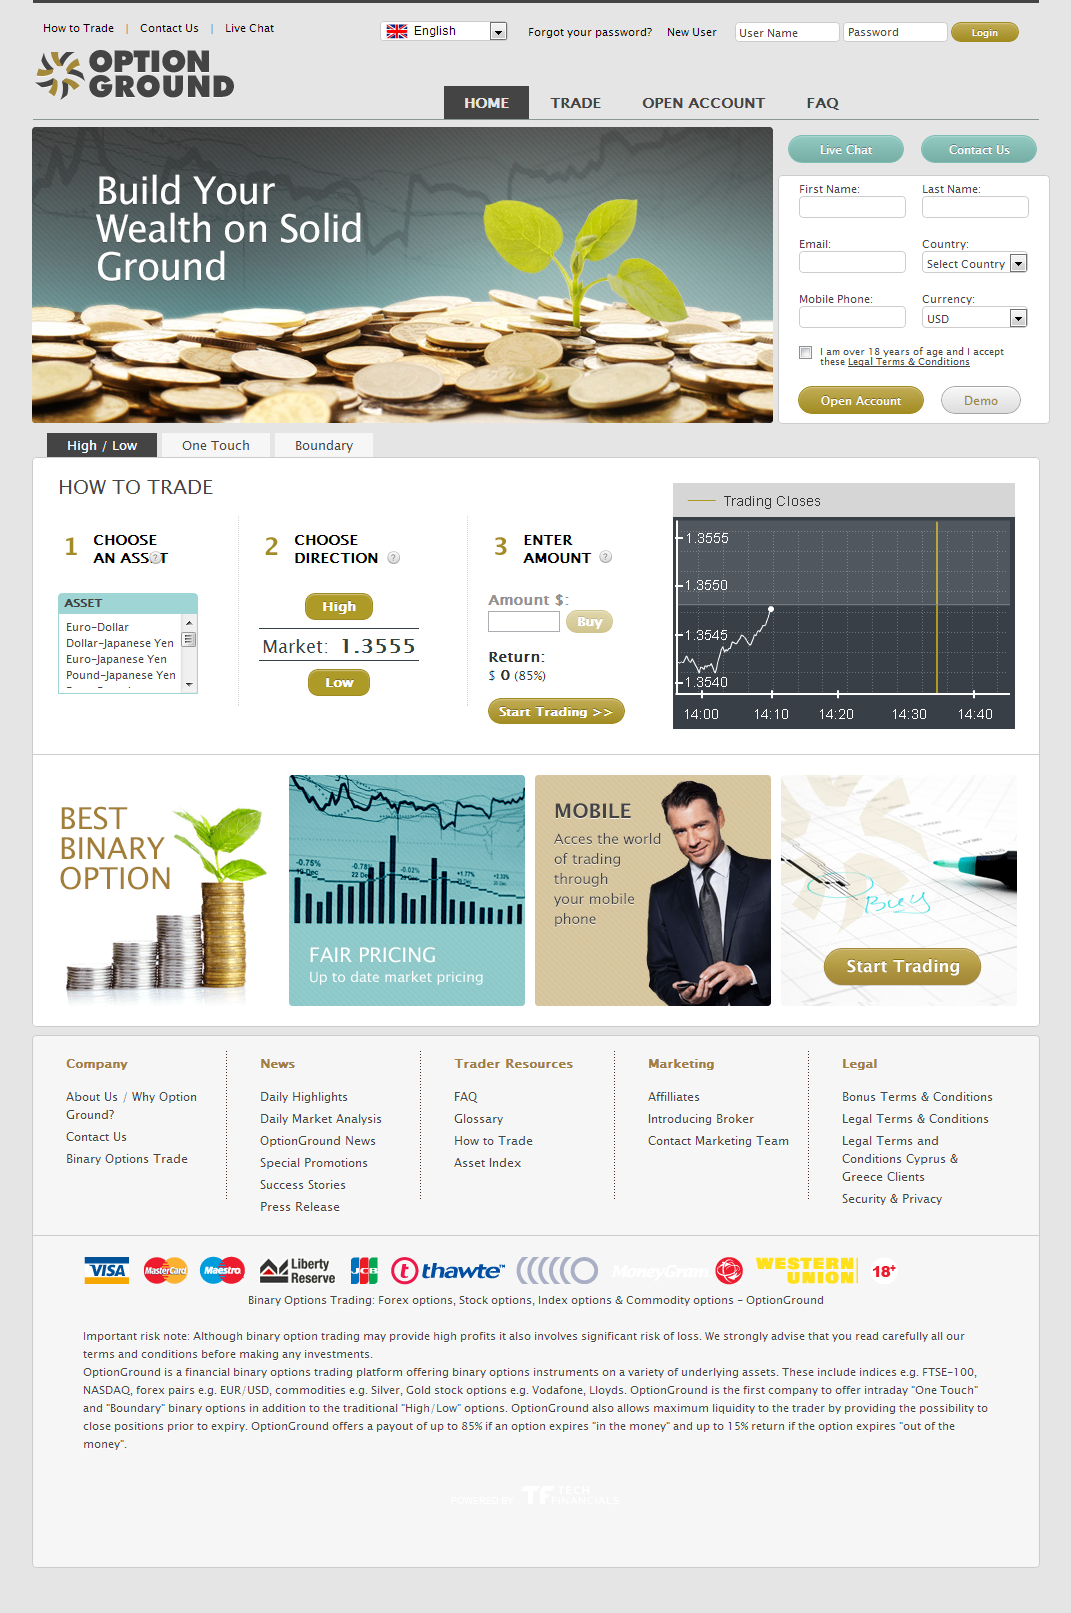 optionground homepage screenshot